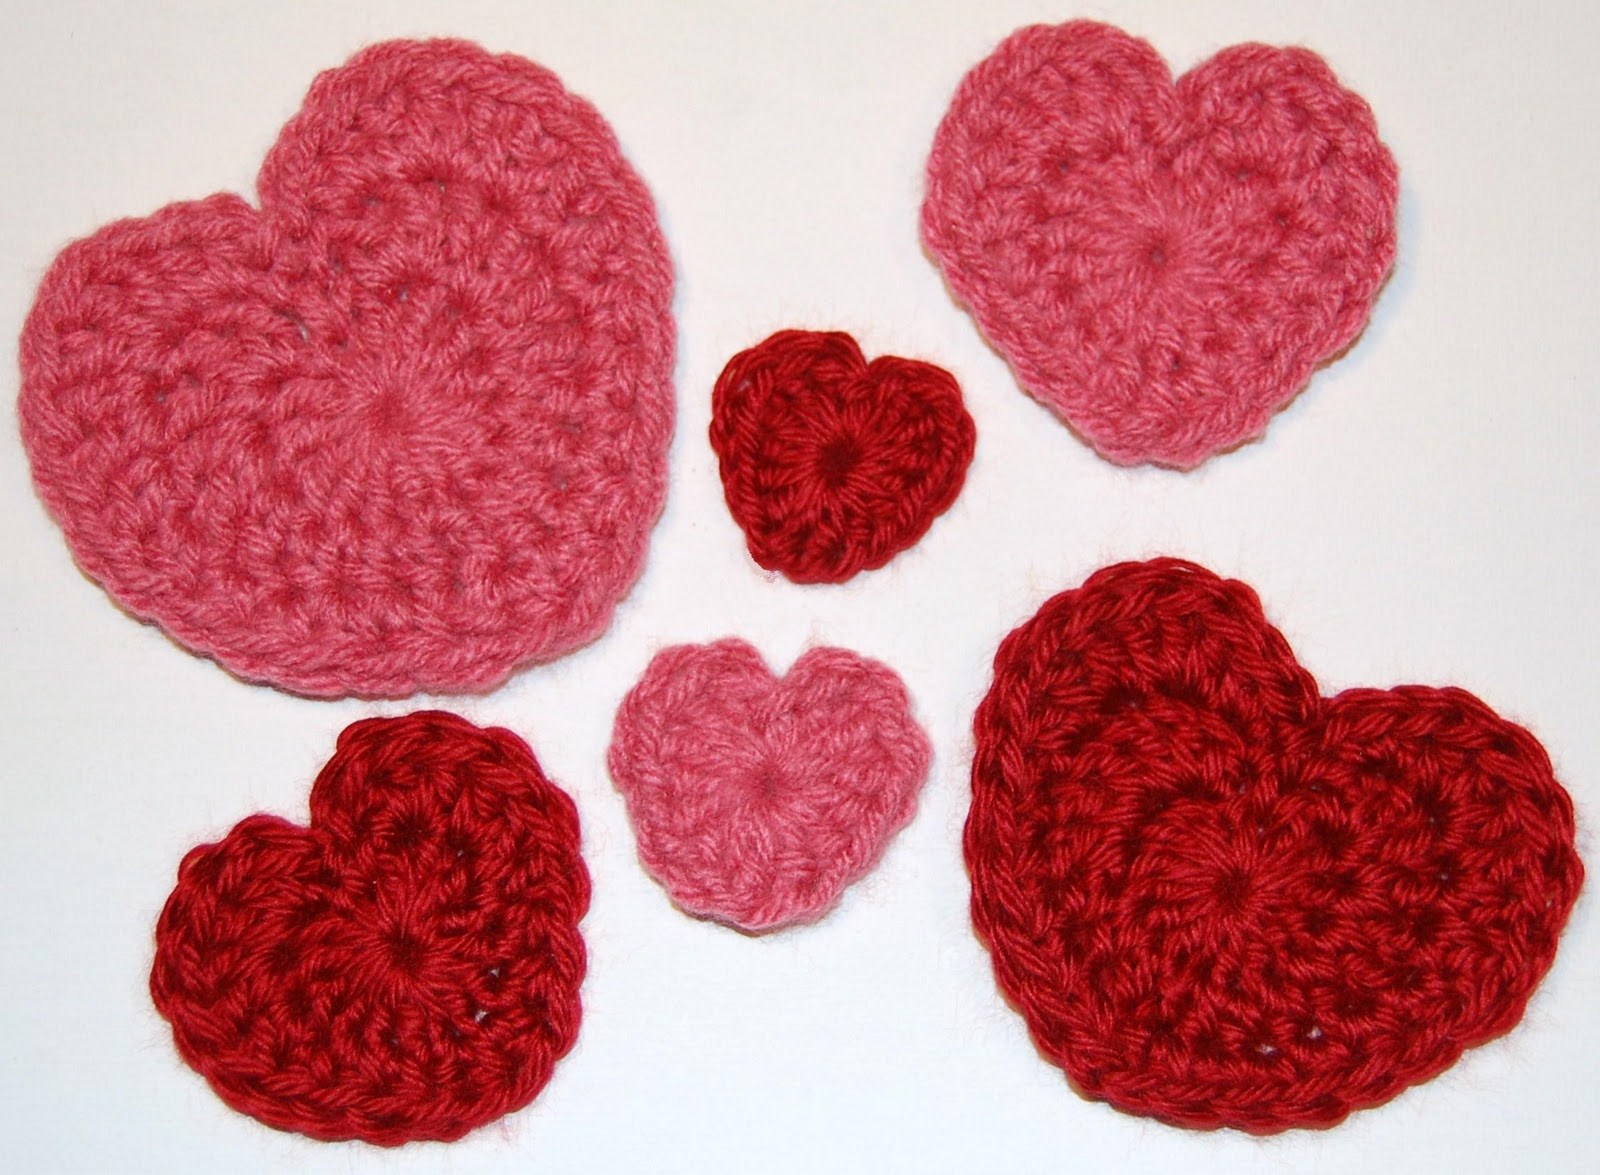 Big Heart Knitting Pattern : Valentines Day Heart Crochet Patterns - Petals to Picots